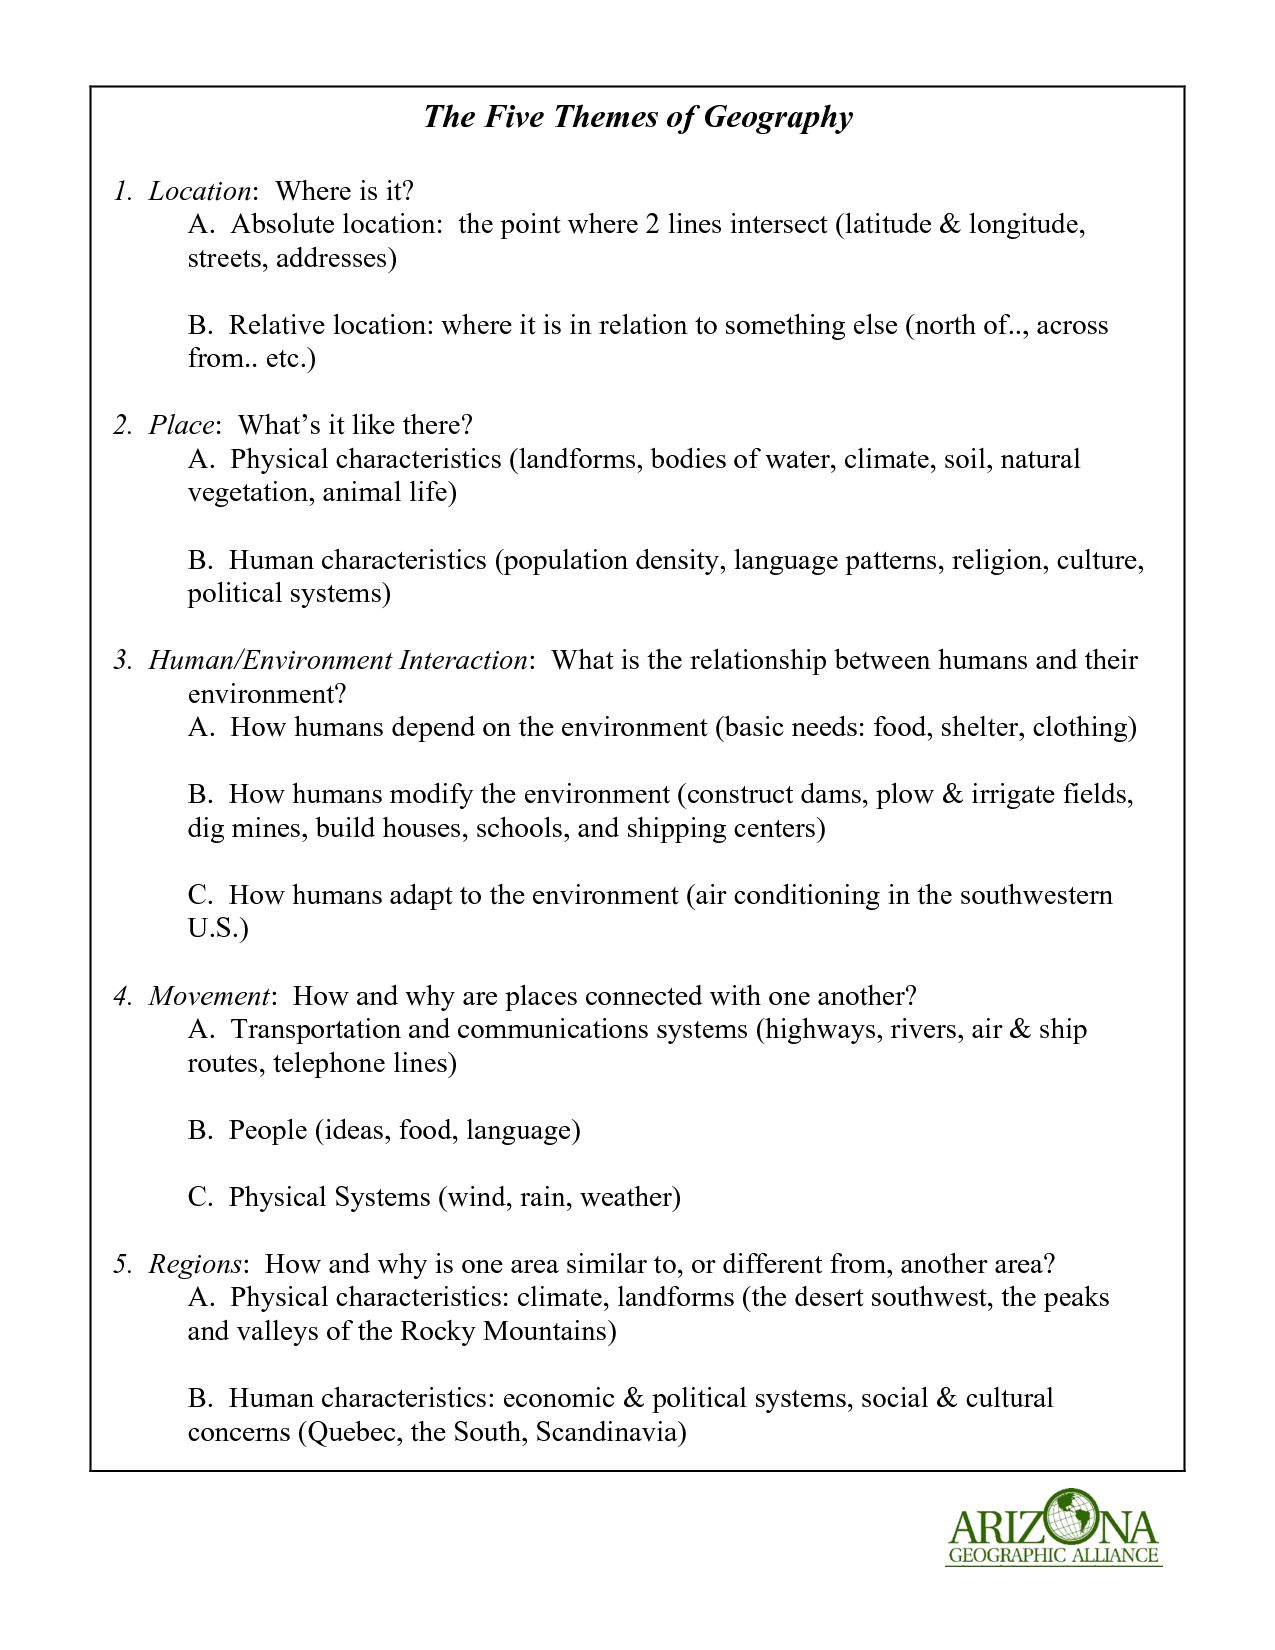 5 Themes Of Geography Printable 18 Best Images Of Five Themes Of Geography Worksheets